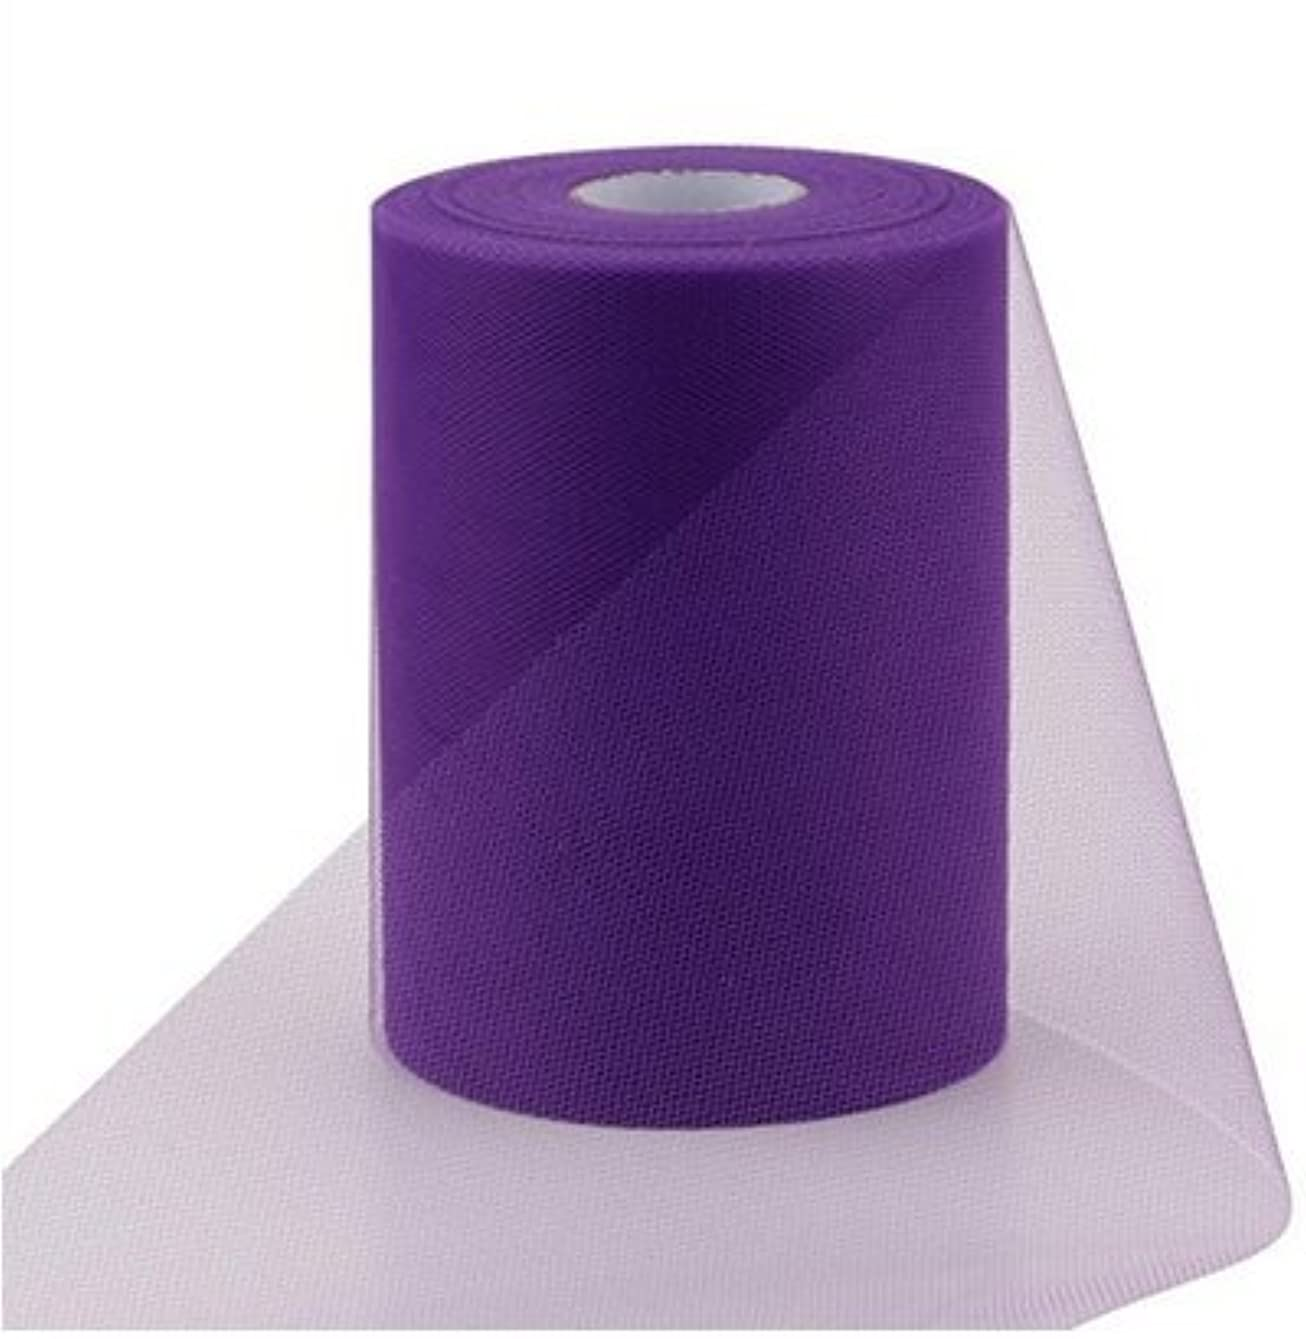 ASIBT 6 Inch x 100 Yards Tulle Roll Spool Fabric Table Runner Chair Sash Bow Tutu Skirt Sewing Crafting Fabric Wedding Party Gift Ribbon (Purple) zkfyff874986